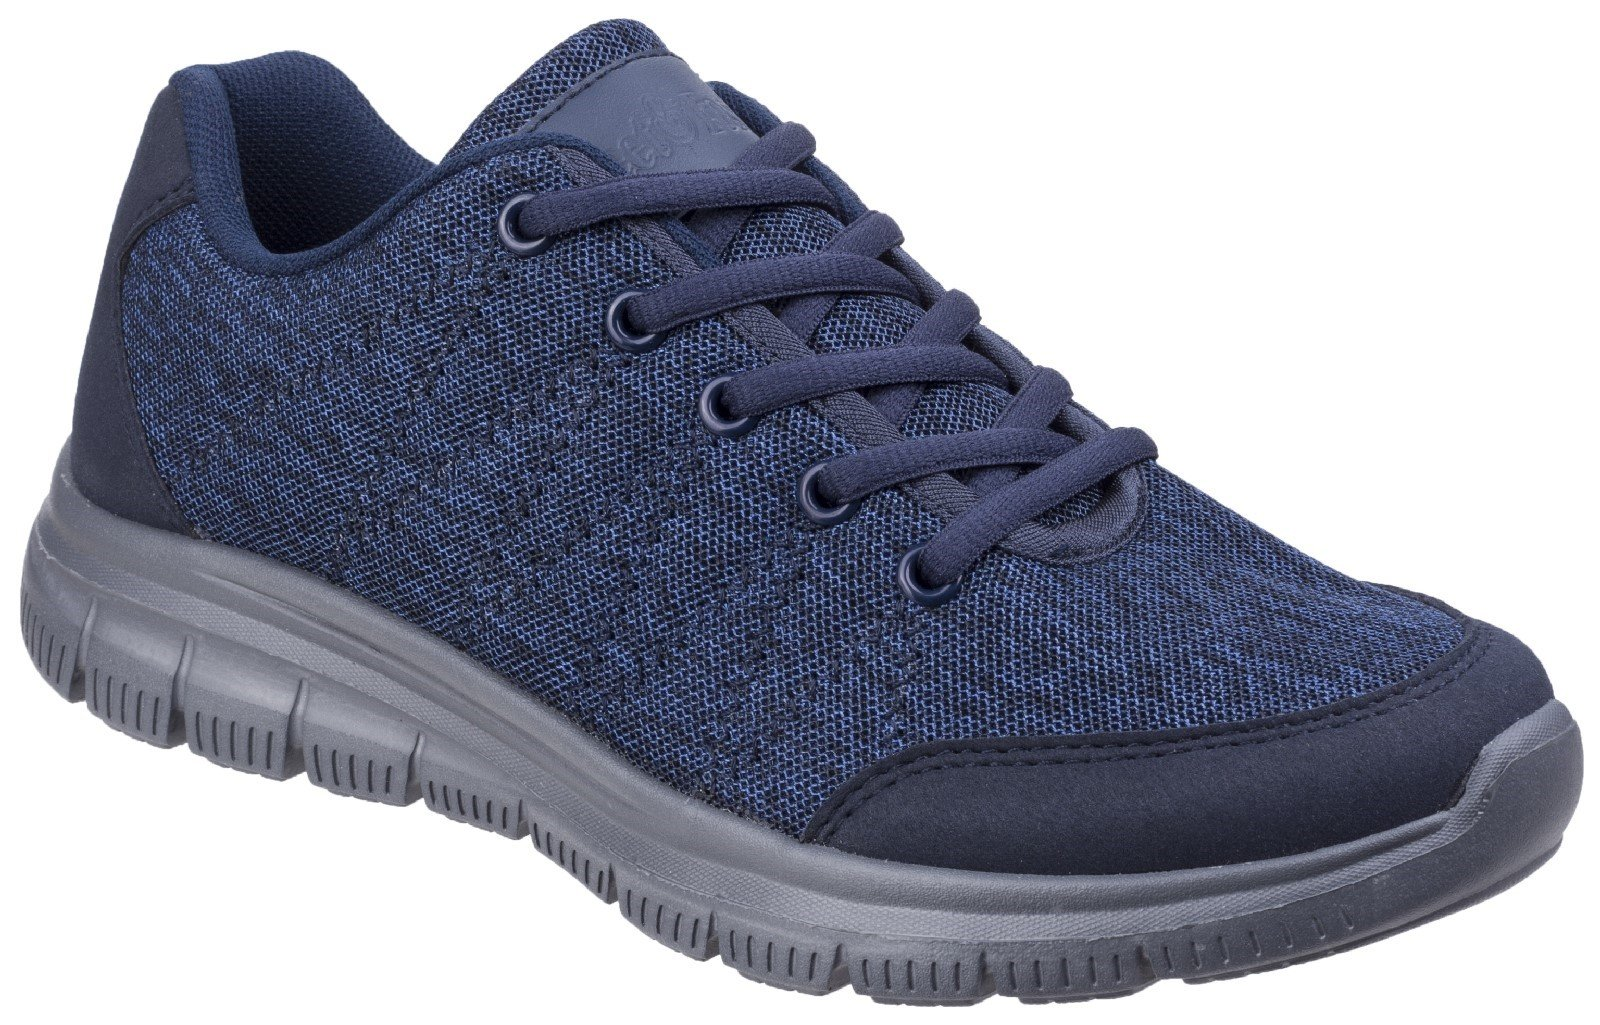 Fleet & Foster Women's Elanor Lace Up Trainer Various Colours 27155-45626 - Navy 3